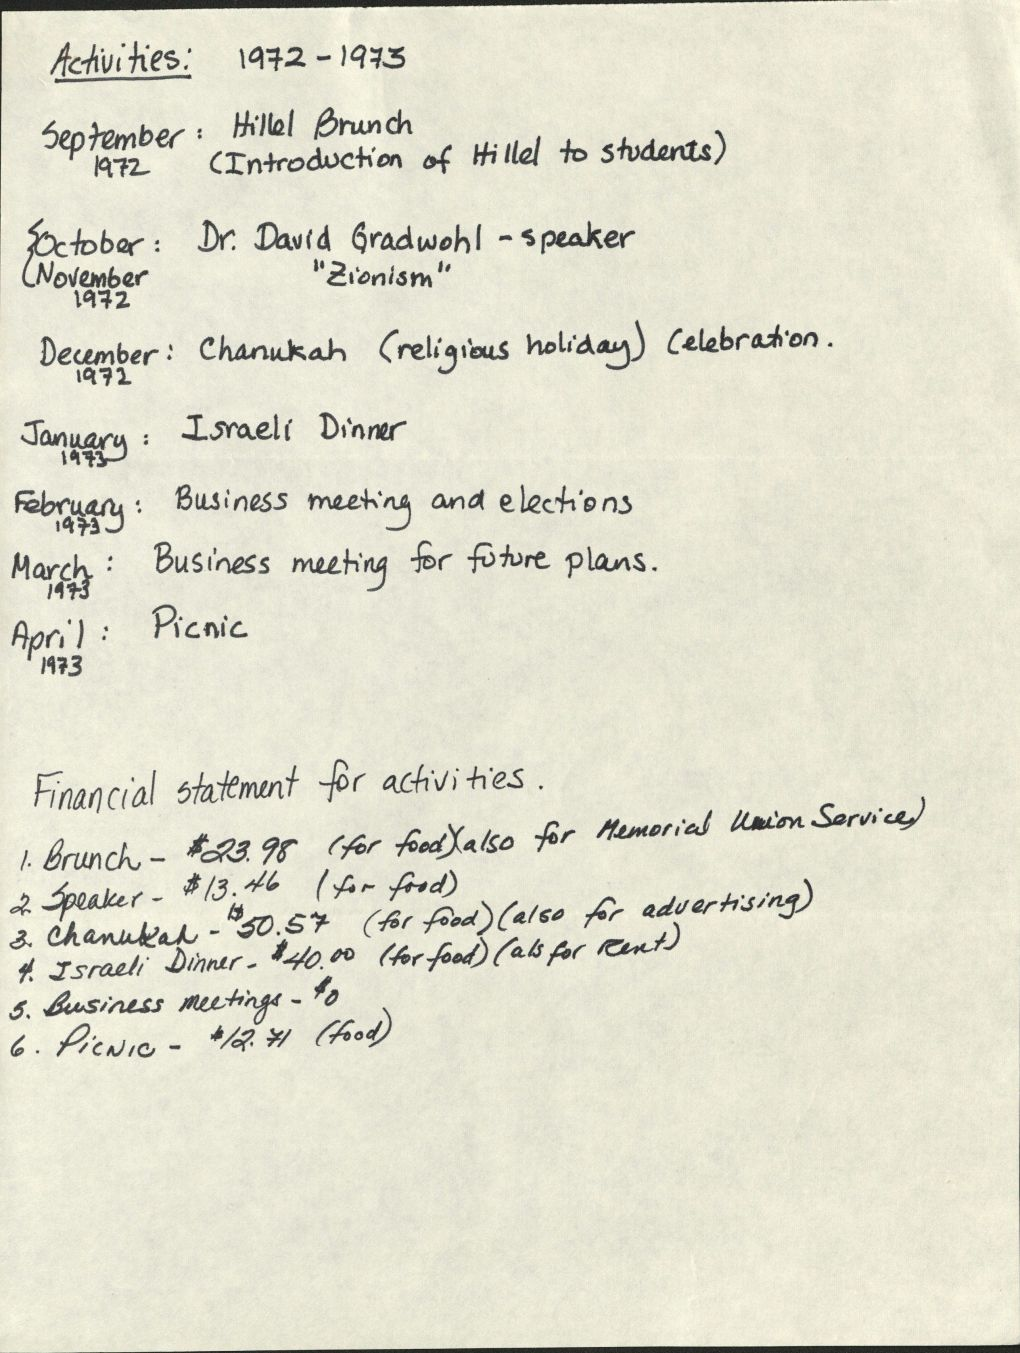 Handwritten calendar and financial statement for club activities for the 1972-1973 school year. For details on text, please contact the ISU archives.